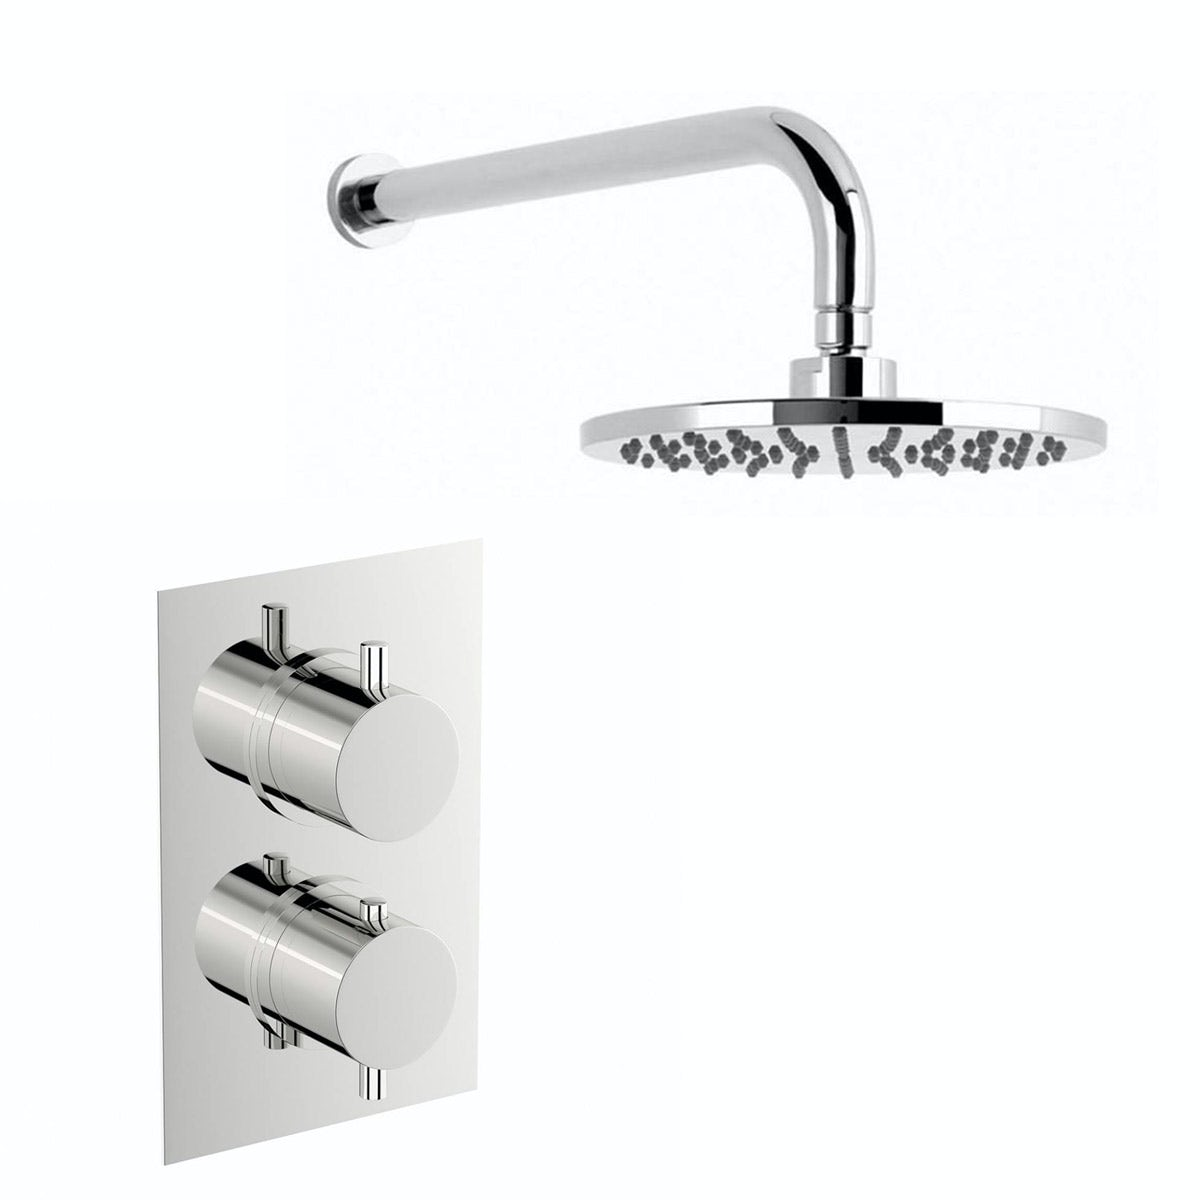 Mode Matrix square twin thermostatic shower valve with round wall shower set